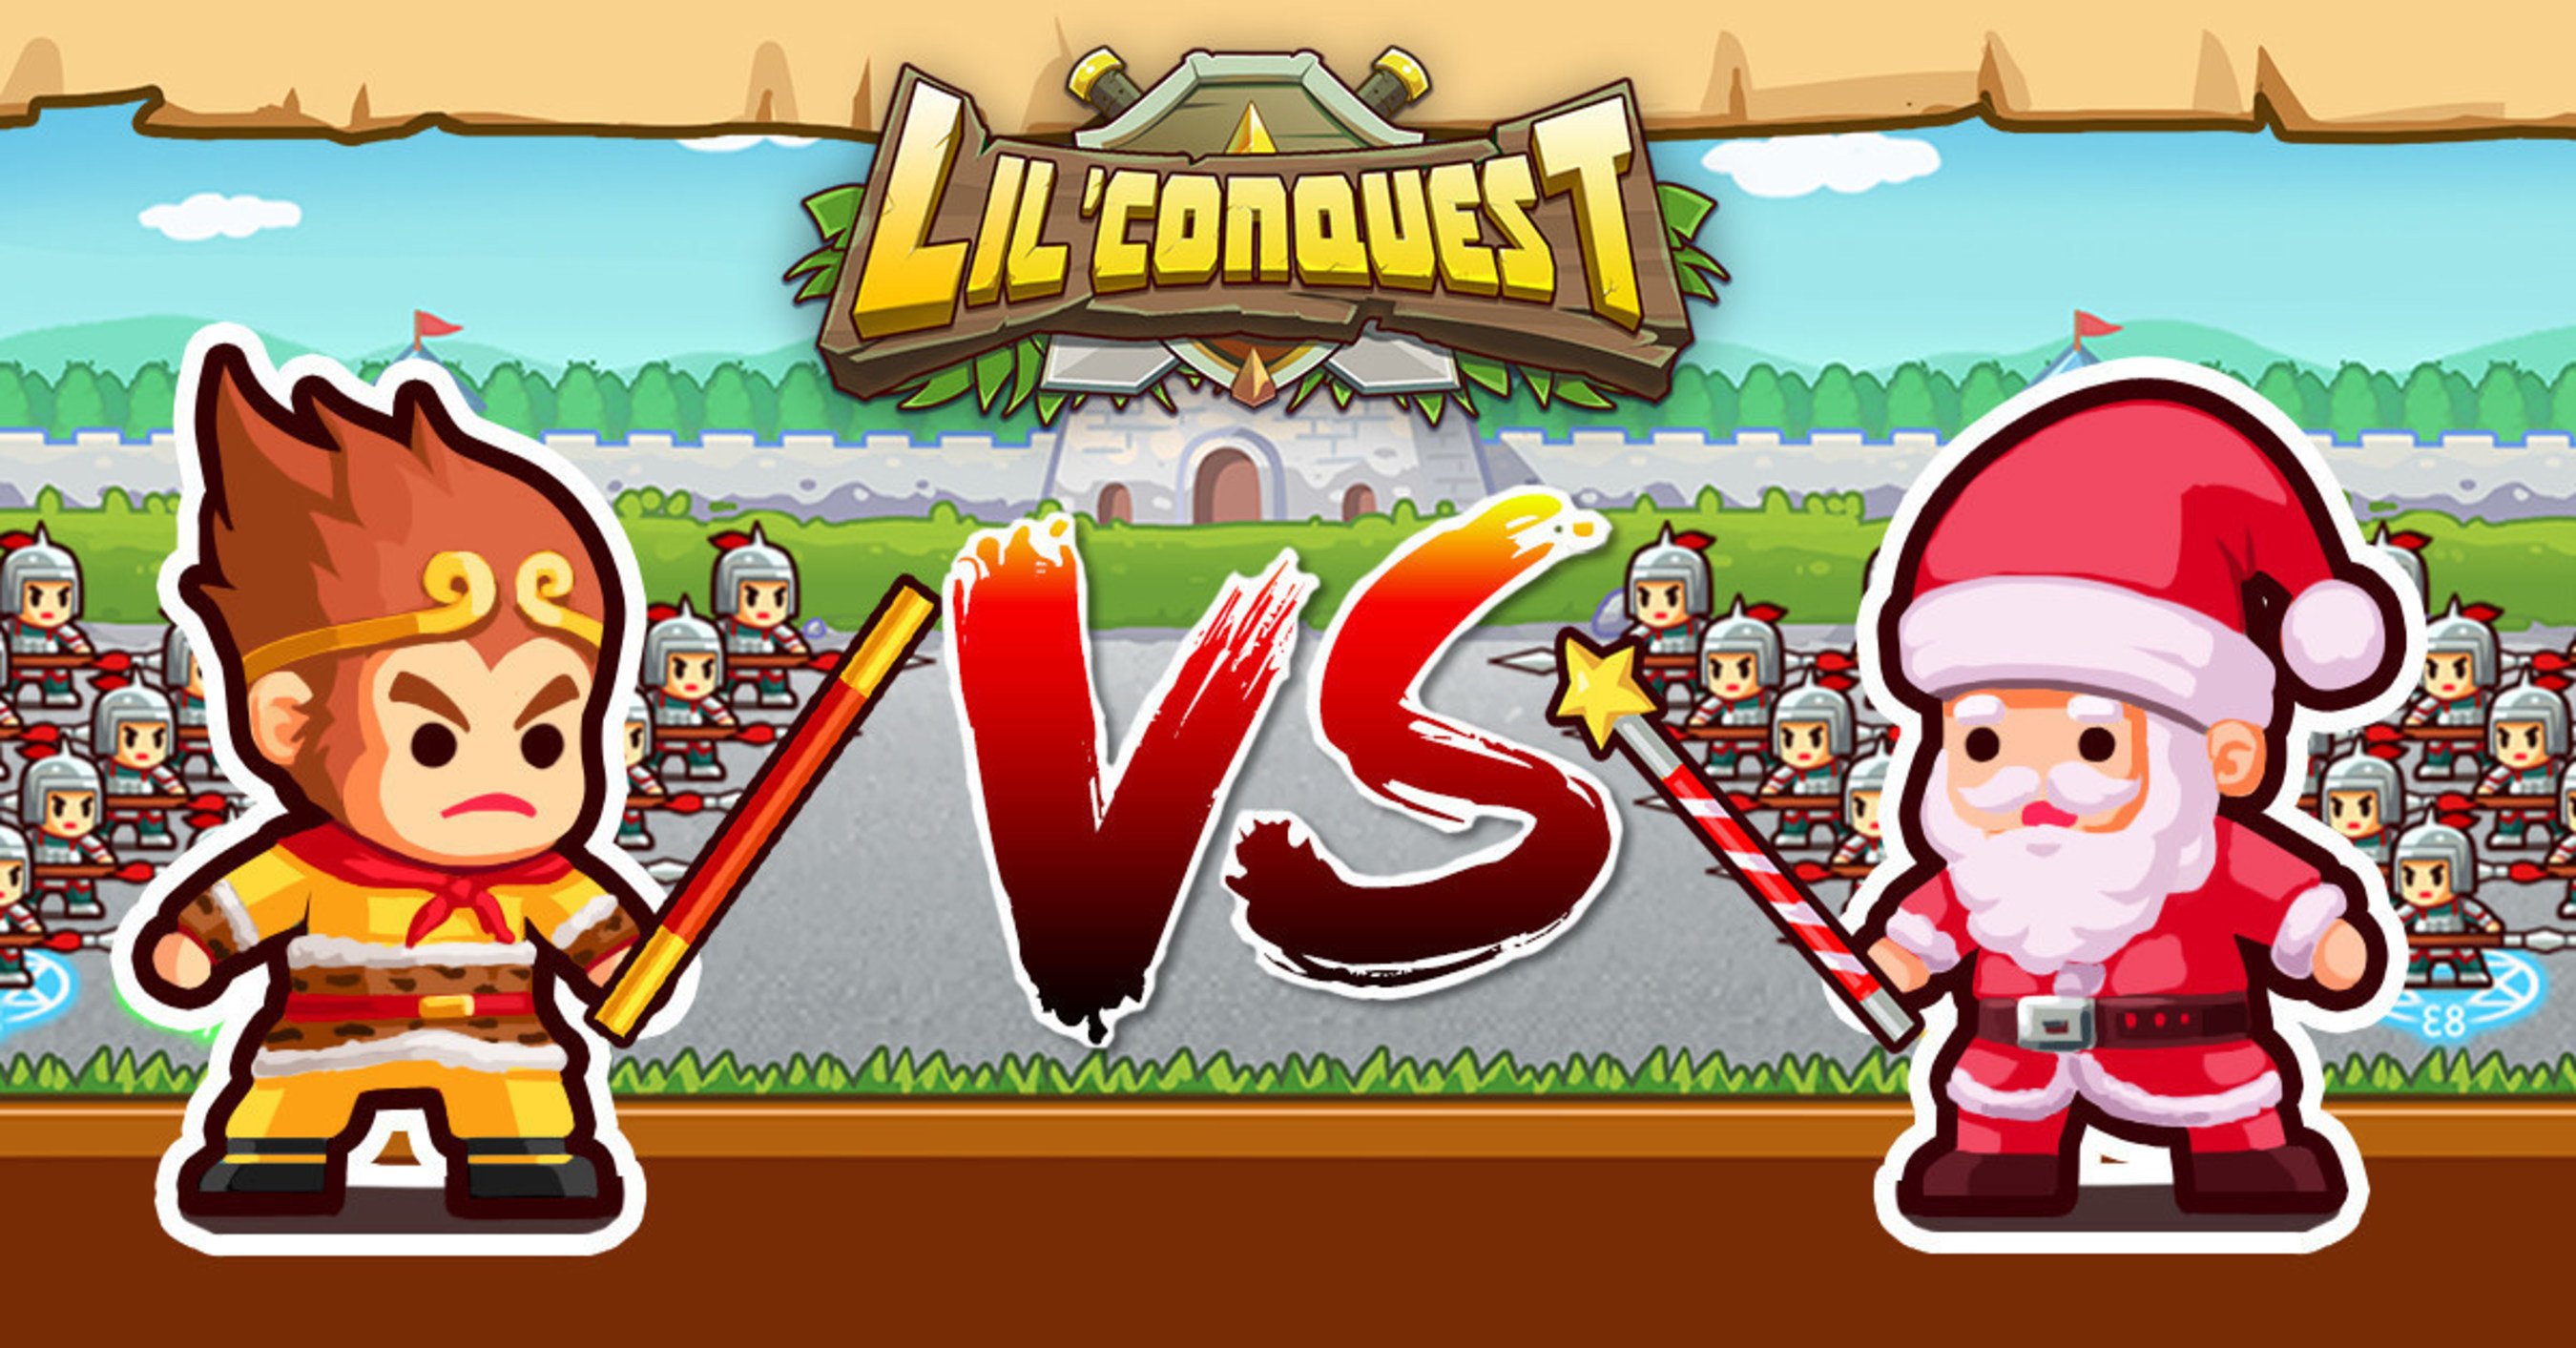 Lil' Conquest Officially Released With Various Events